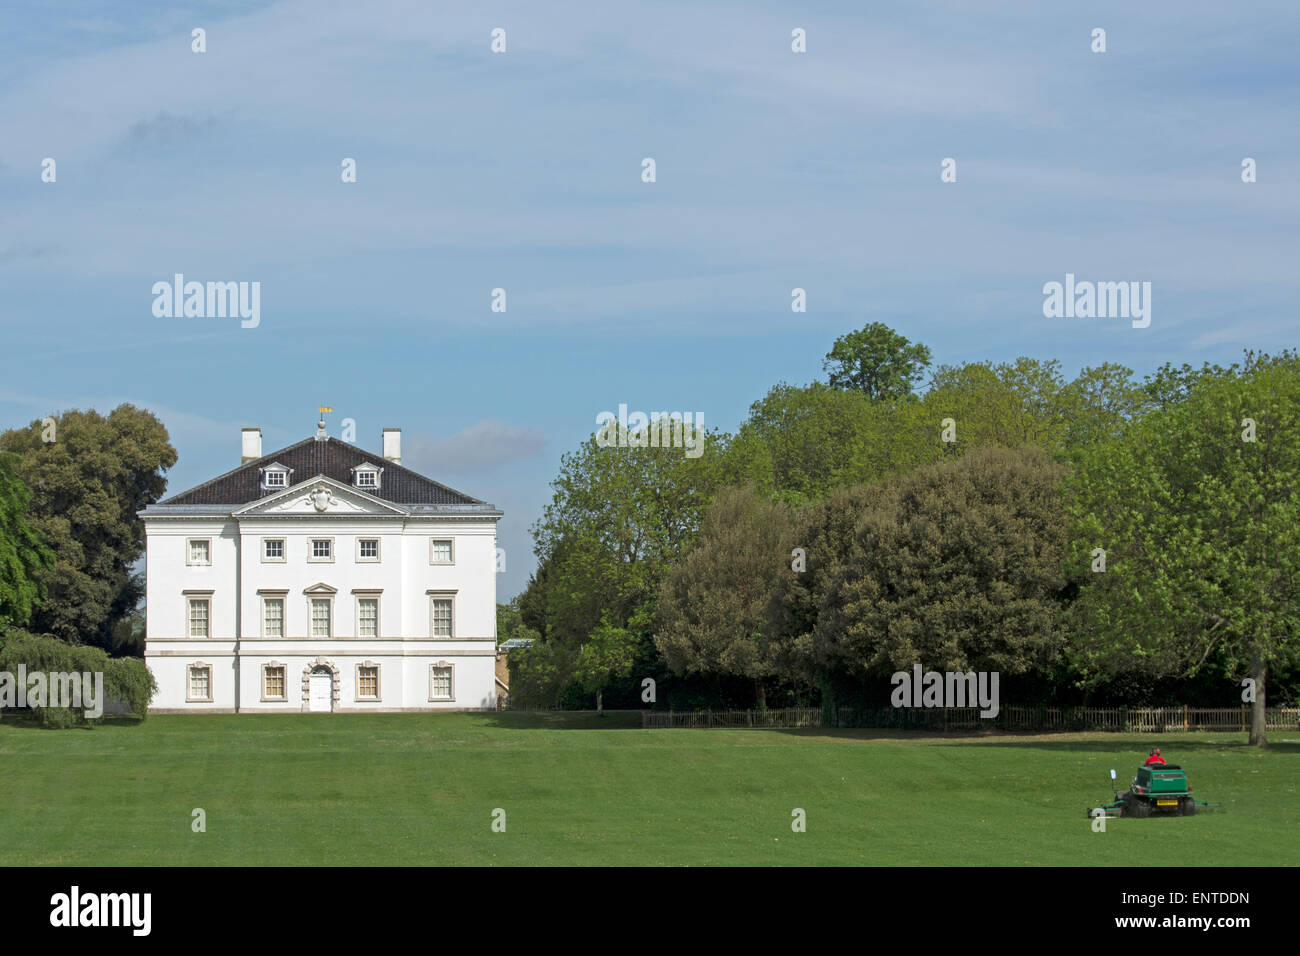 lawn being mowed in marble hill park, the grounds of marble hill house, twickenham, middlesex, england - Stock Image